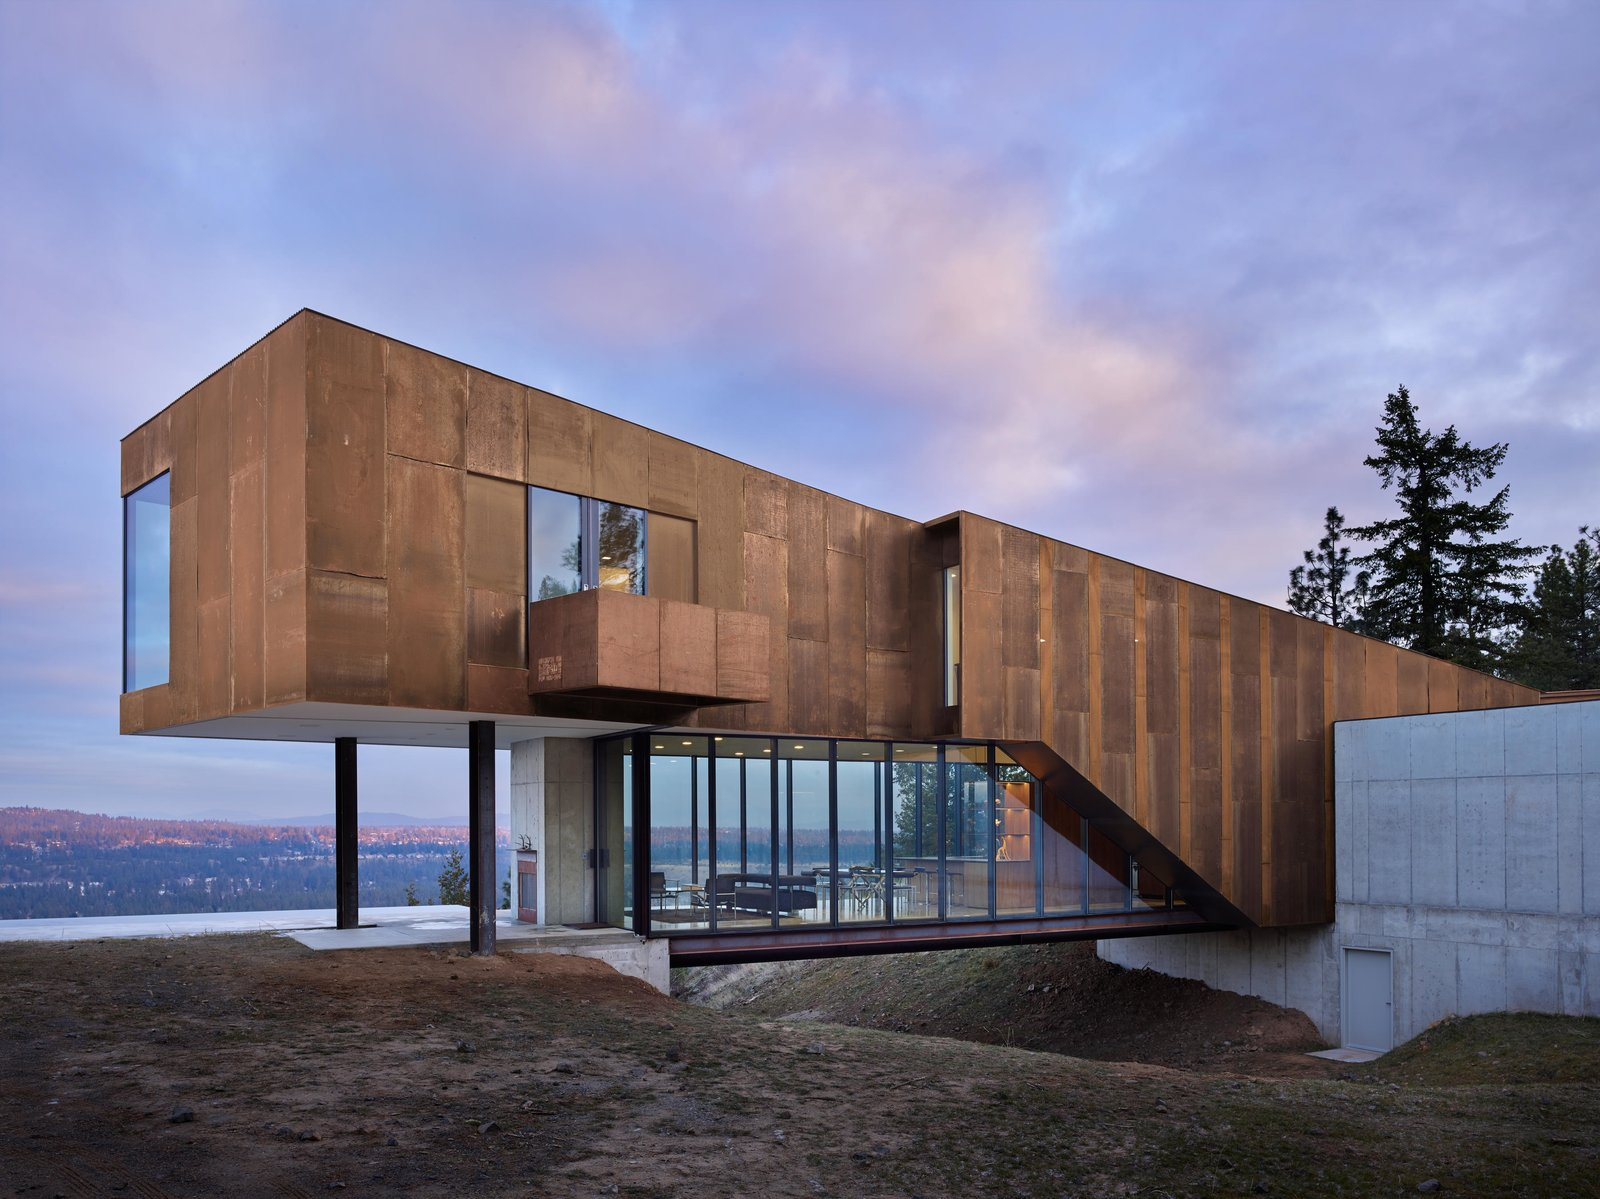 House Building Type, Metal Roof Material, Metal Siding Material, Outdoor, Back Yard, Large Patio, Porch, Deck, Concrete Patio, Porch, Deck, Infinity Pools, Tubs, Shower, Side Yard, and Front Yard Rimrock | Olson Kundig  Photos from Rimrock